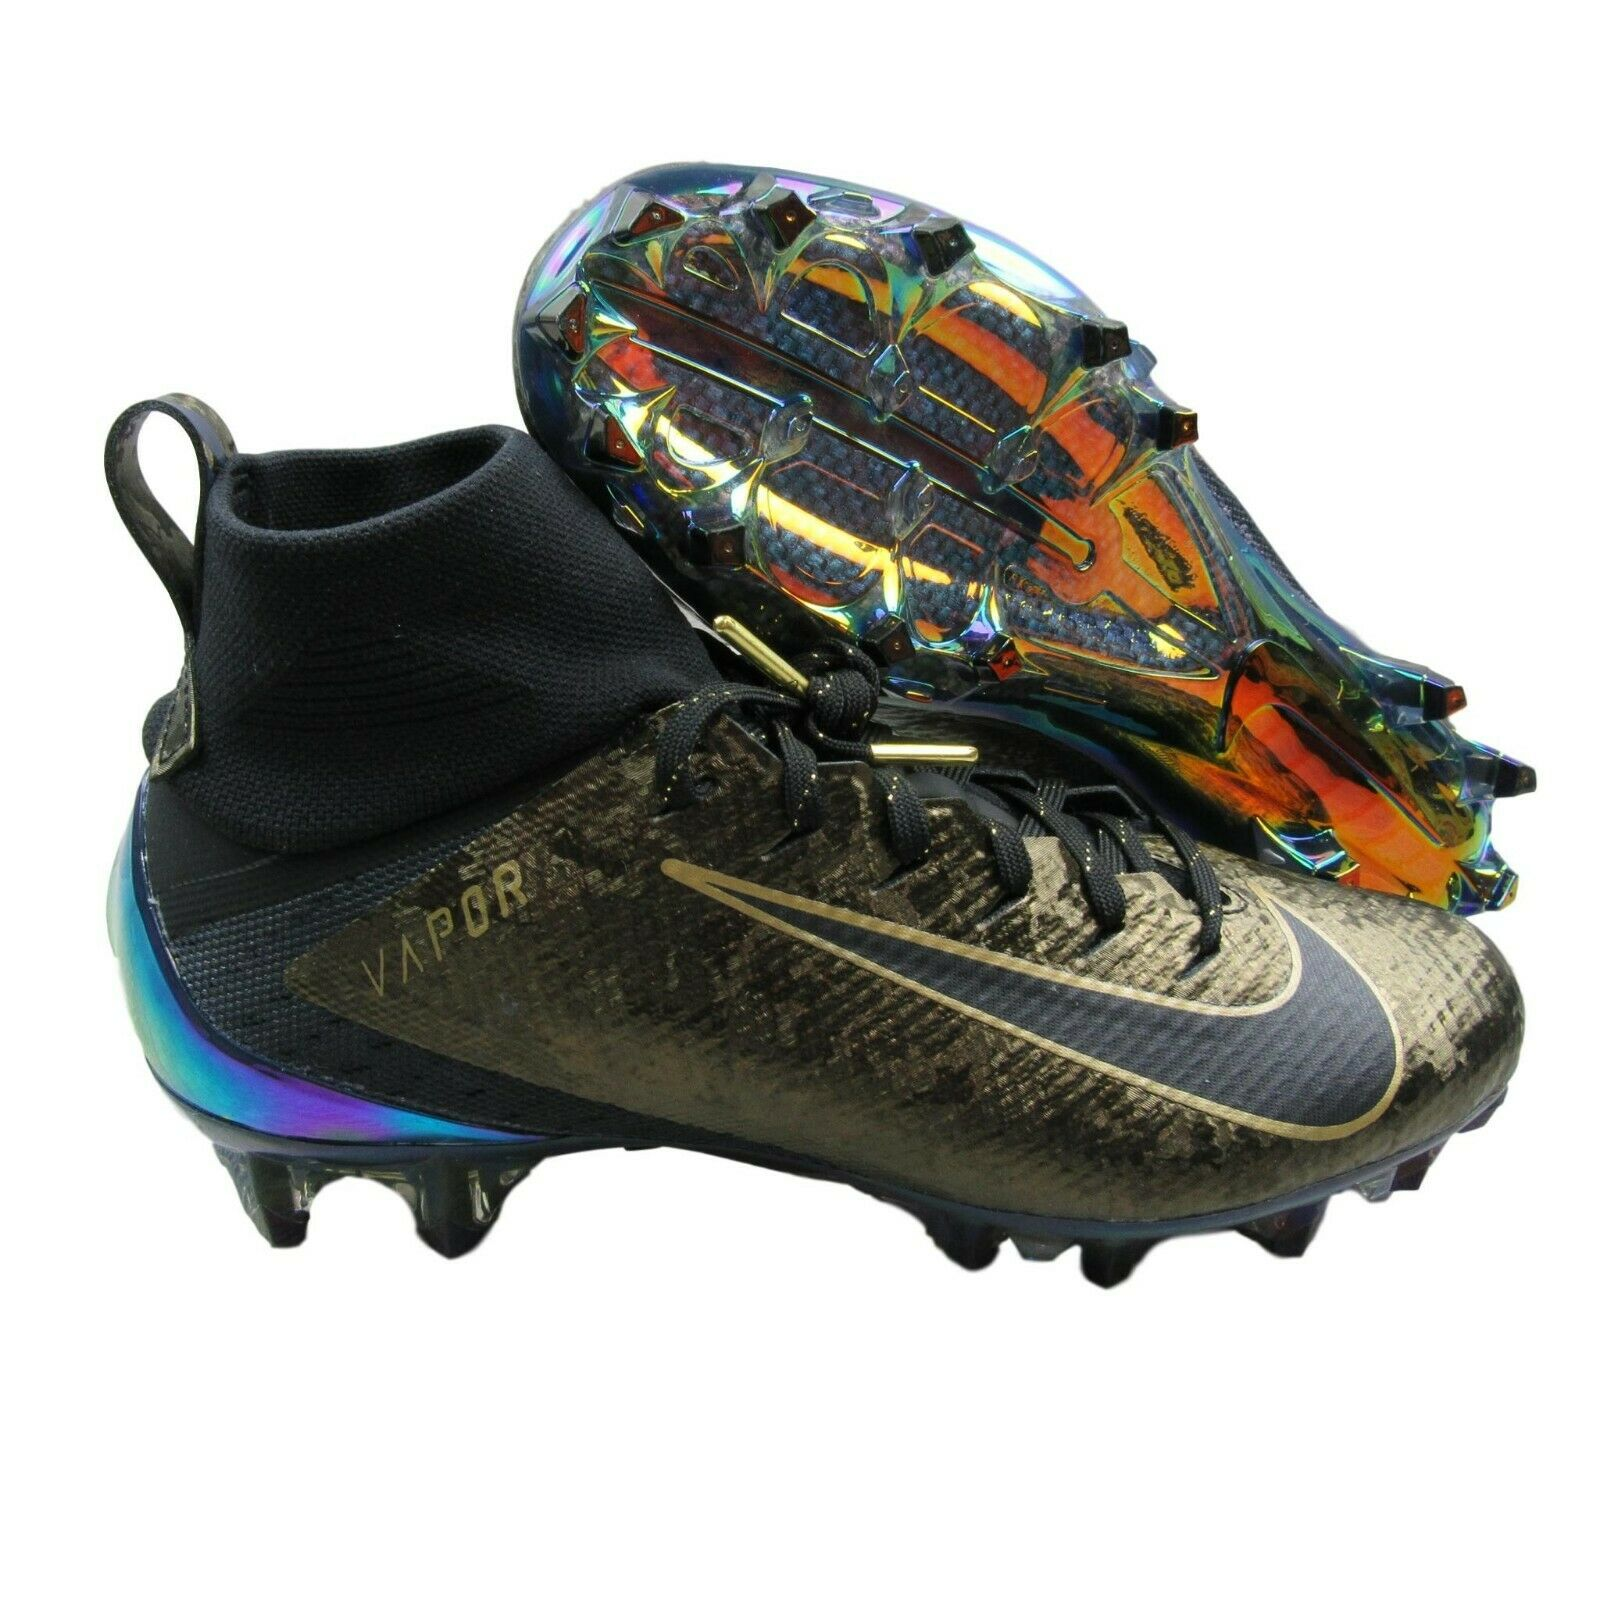 98c2d843e2b5 Nike Vapor Untouchable 3 Pro PRM Football Cleats Black Size 7.5 ...